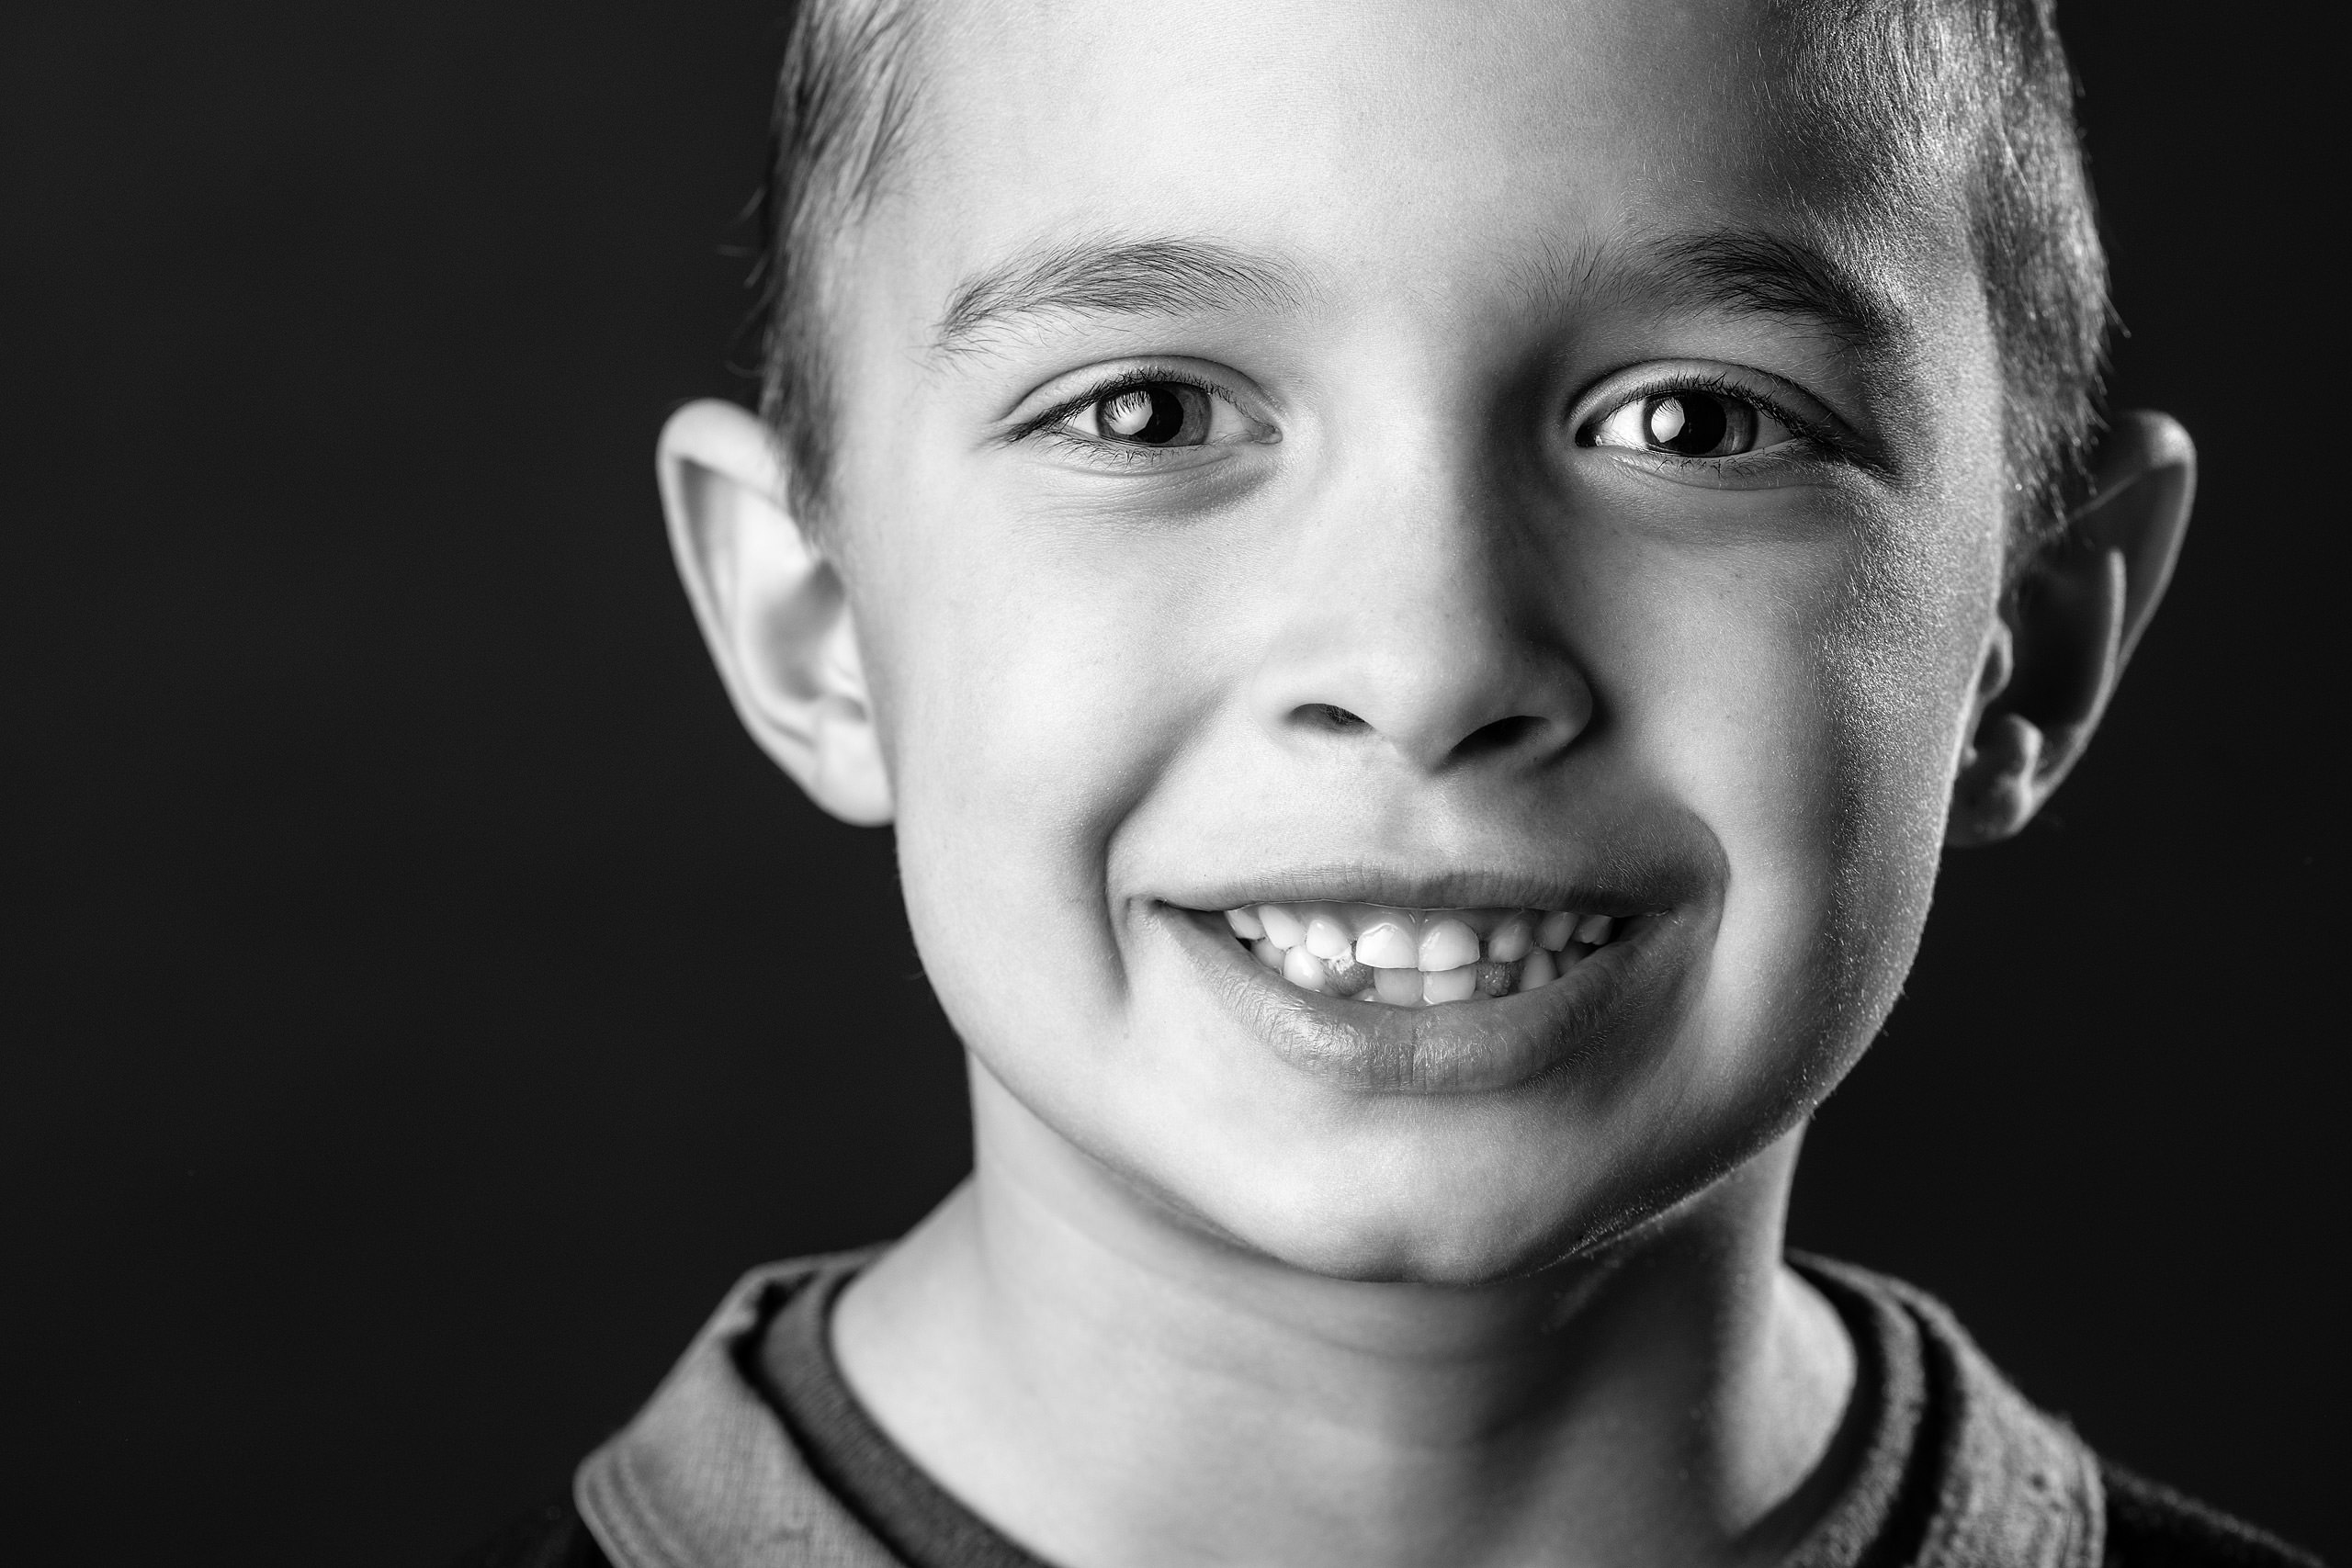 young boy smiling taken by family photographer sean leblanc